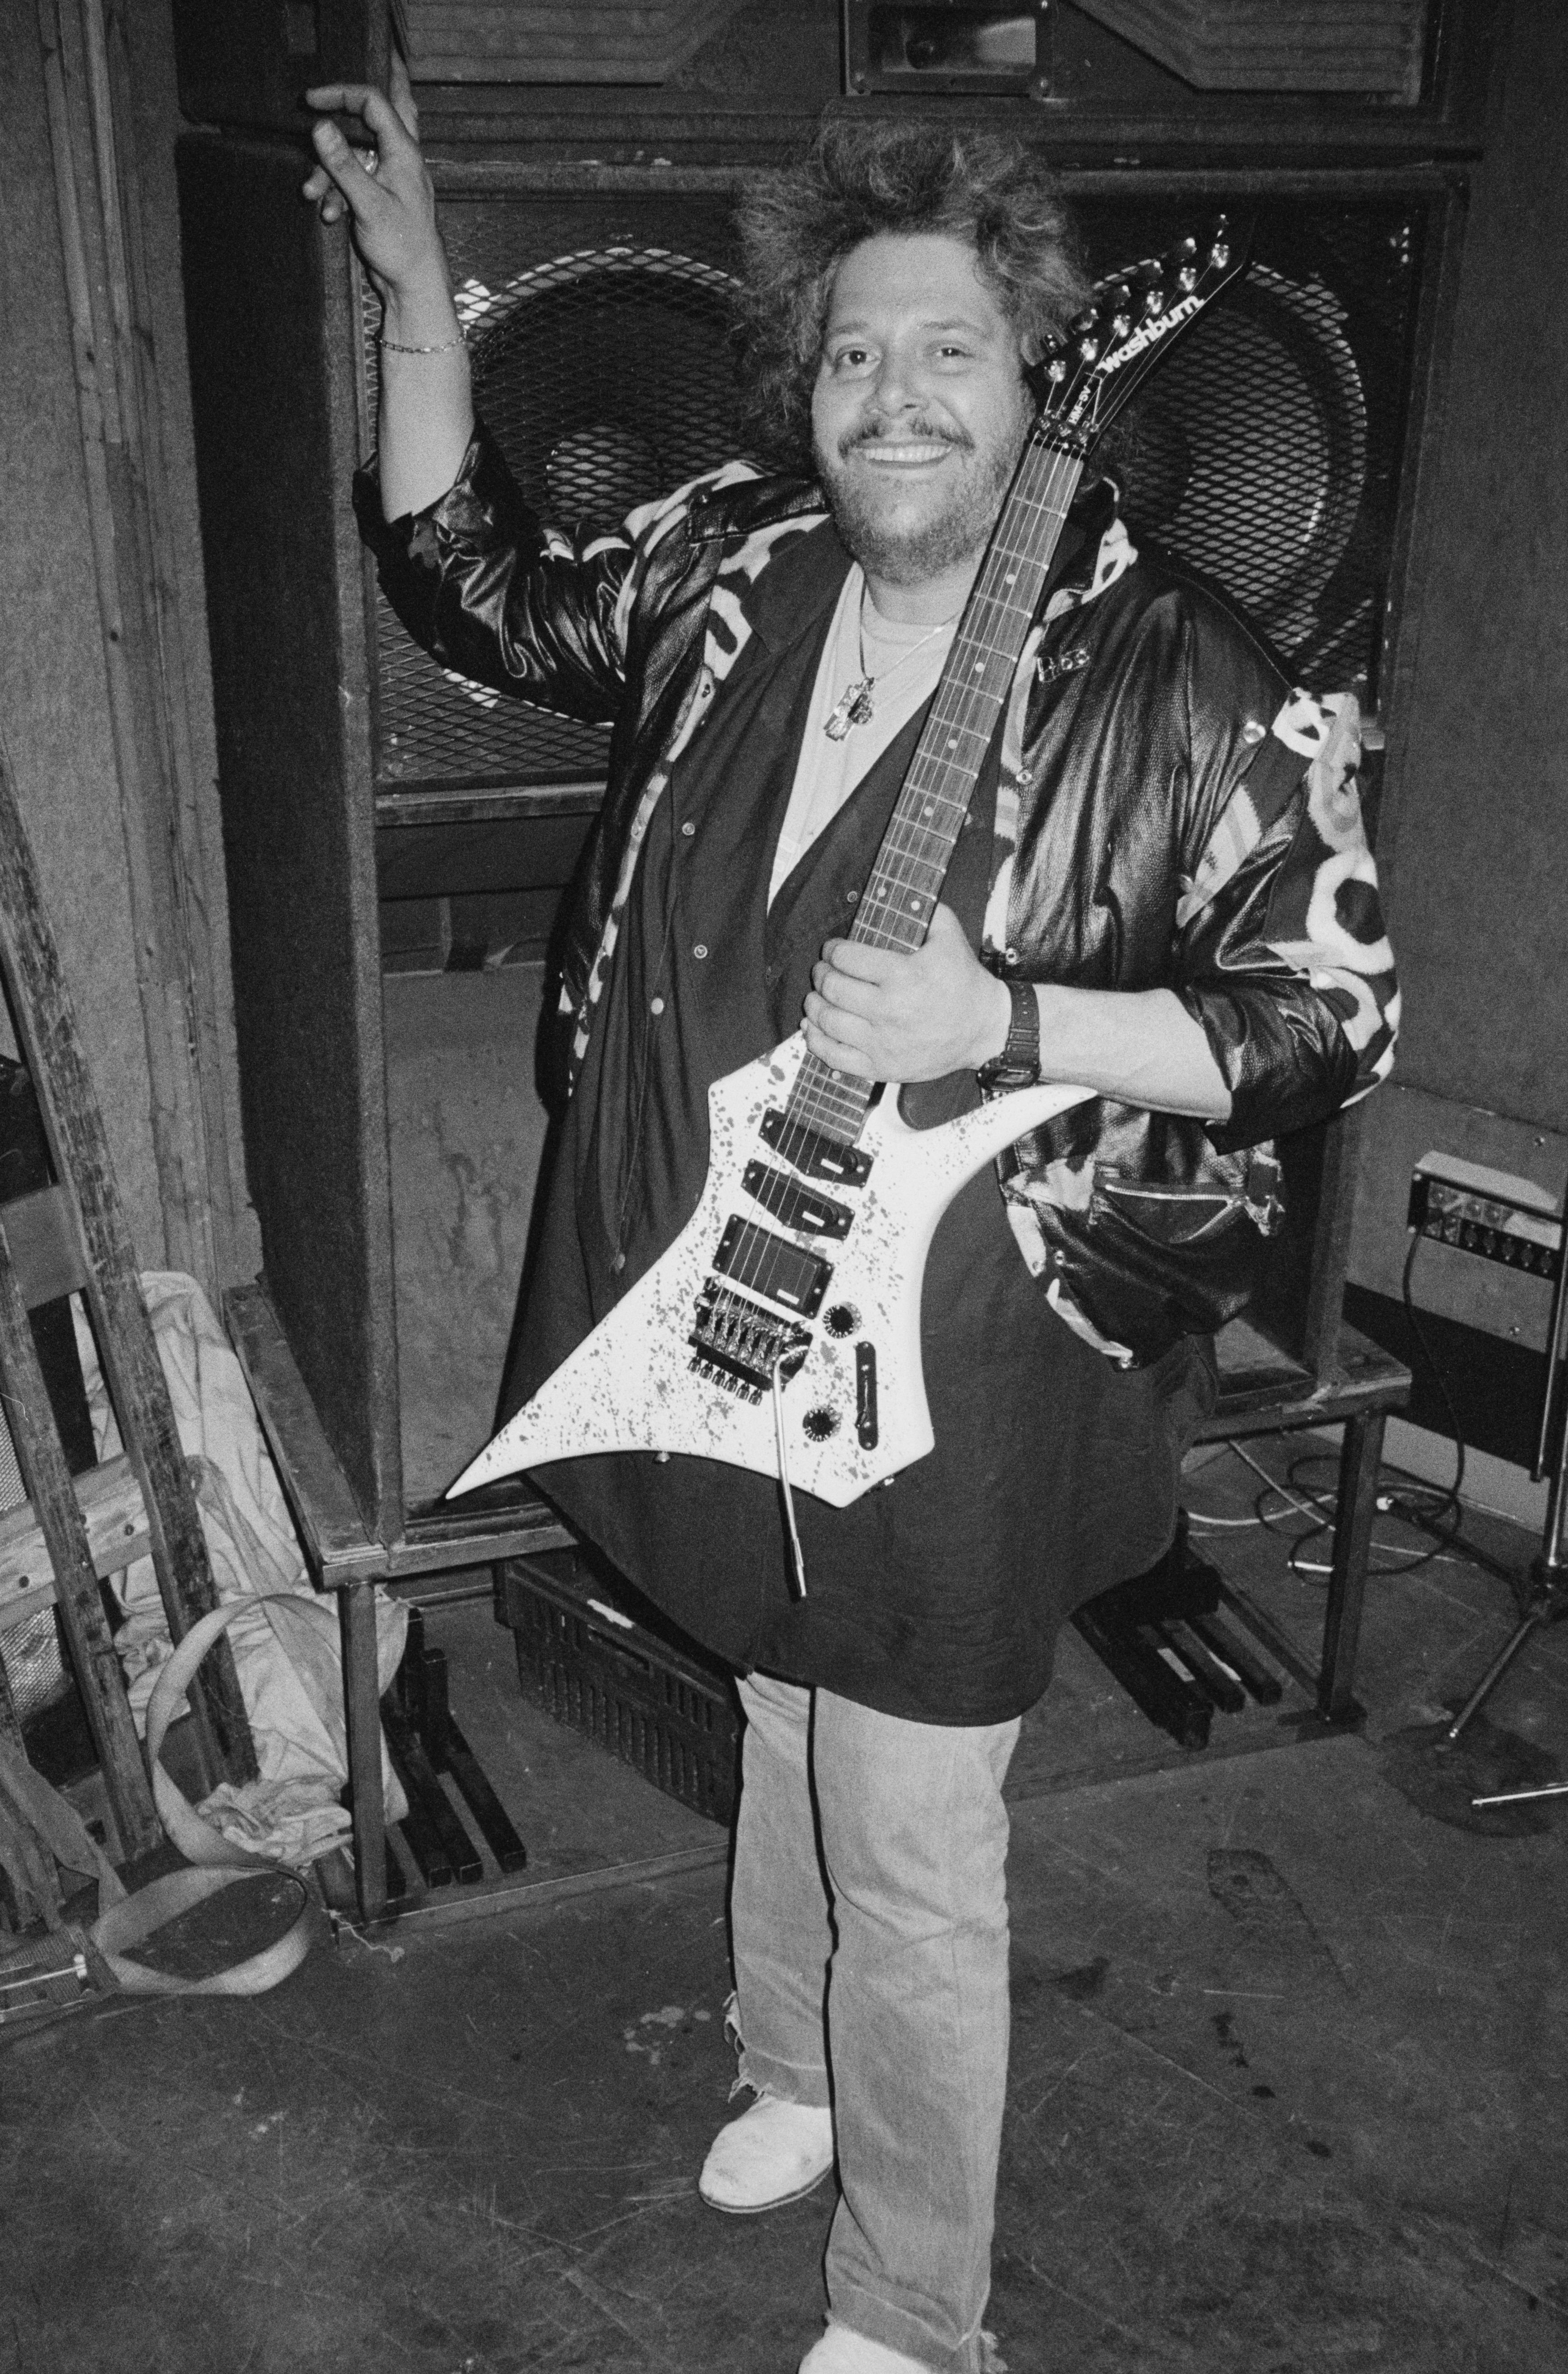 Leslie West of Mountain poses with a Washburn guitar in a rehearsal studio in 1984 inLondon, United Kingdom | Photo:Erica Echenberg/Redferns/Getty Images